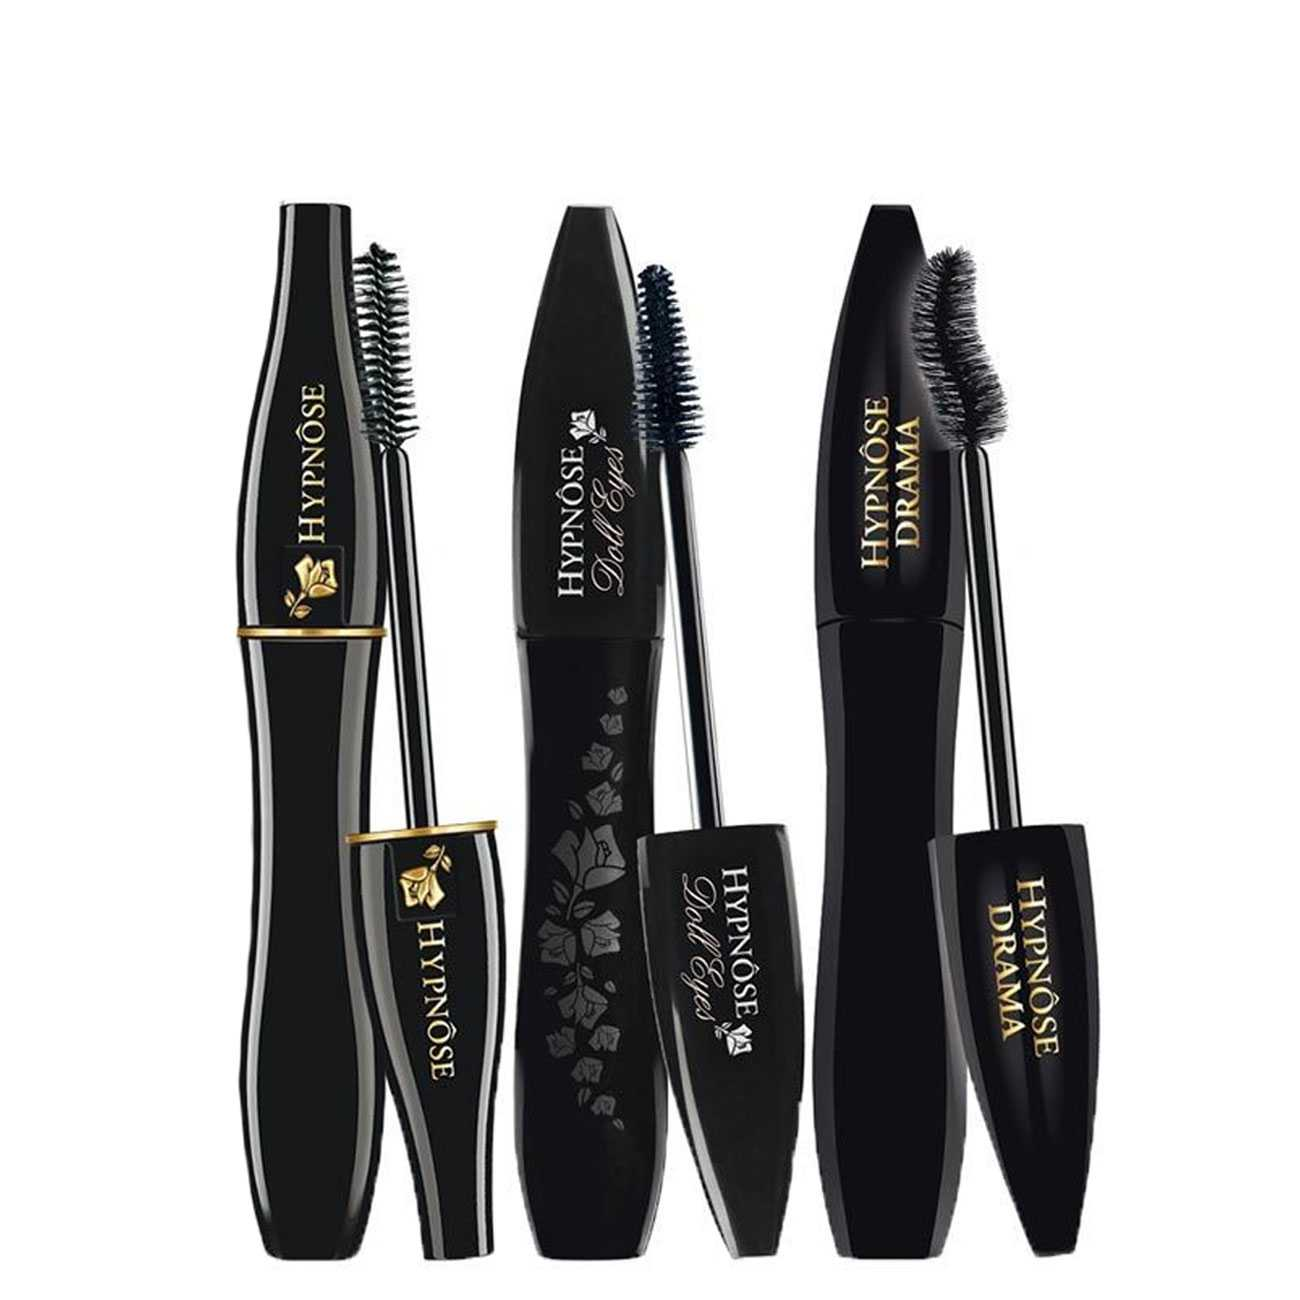 HYPNOSE MASCARA SET 21 ML